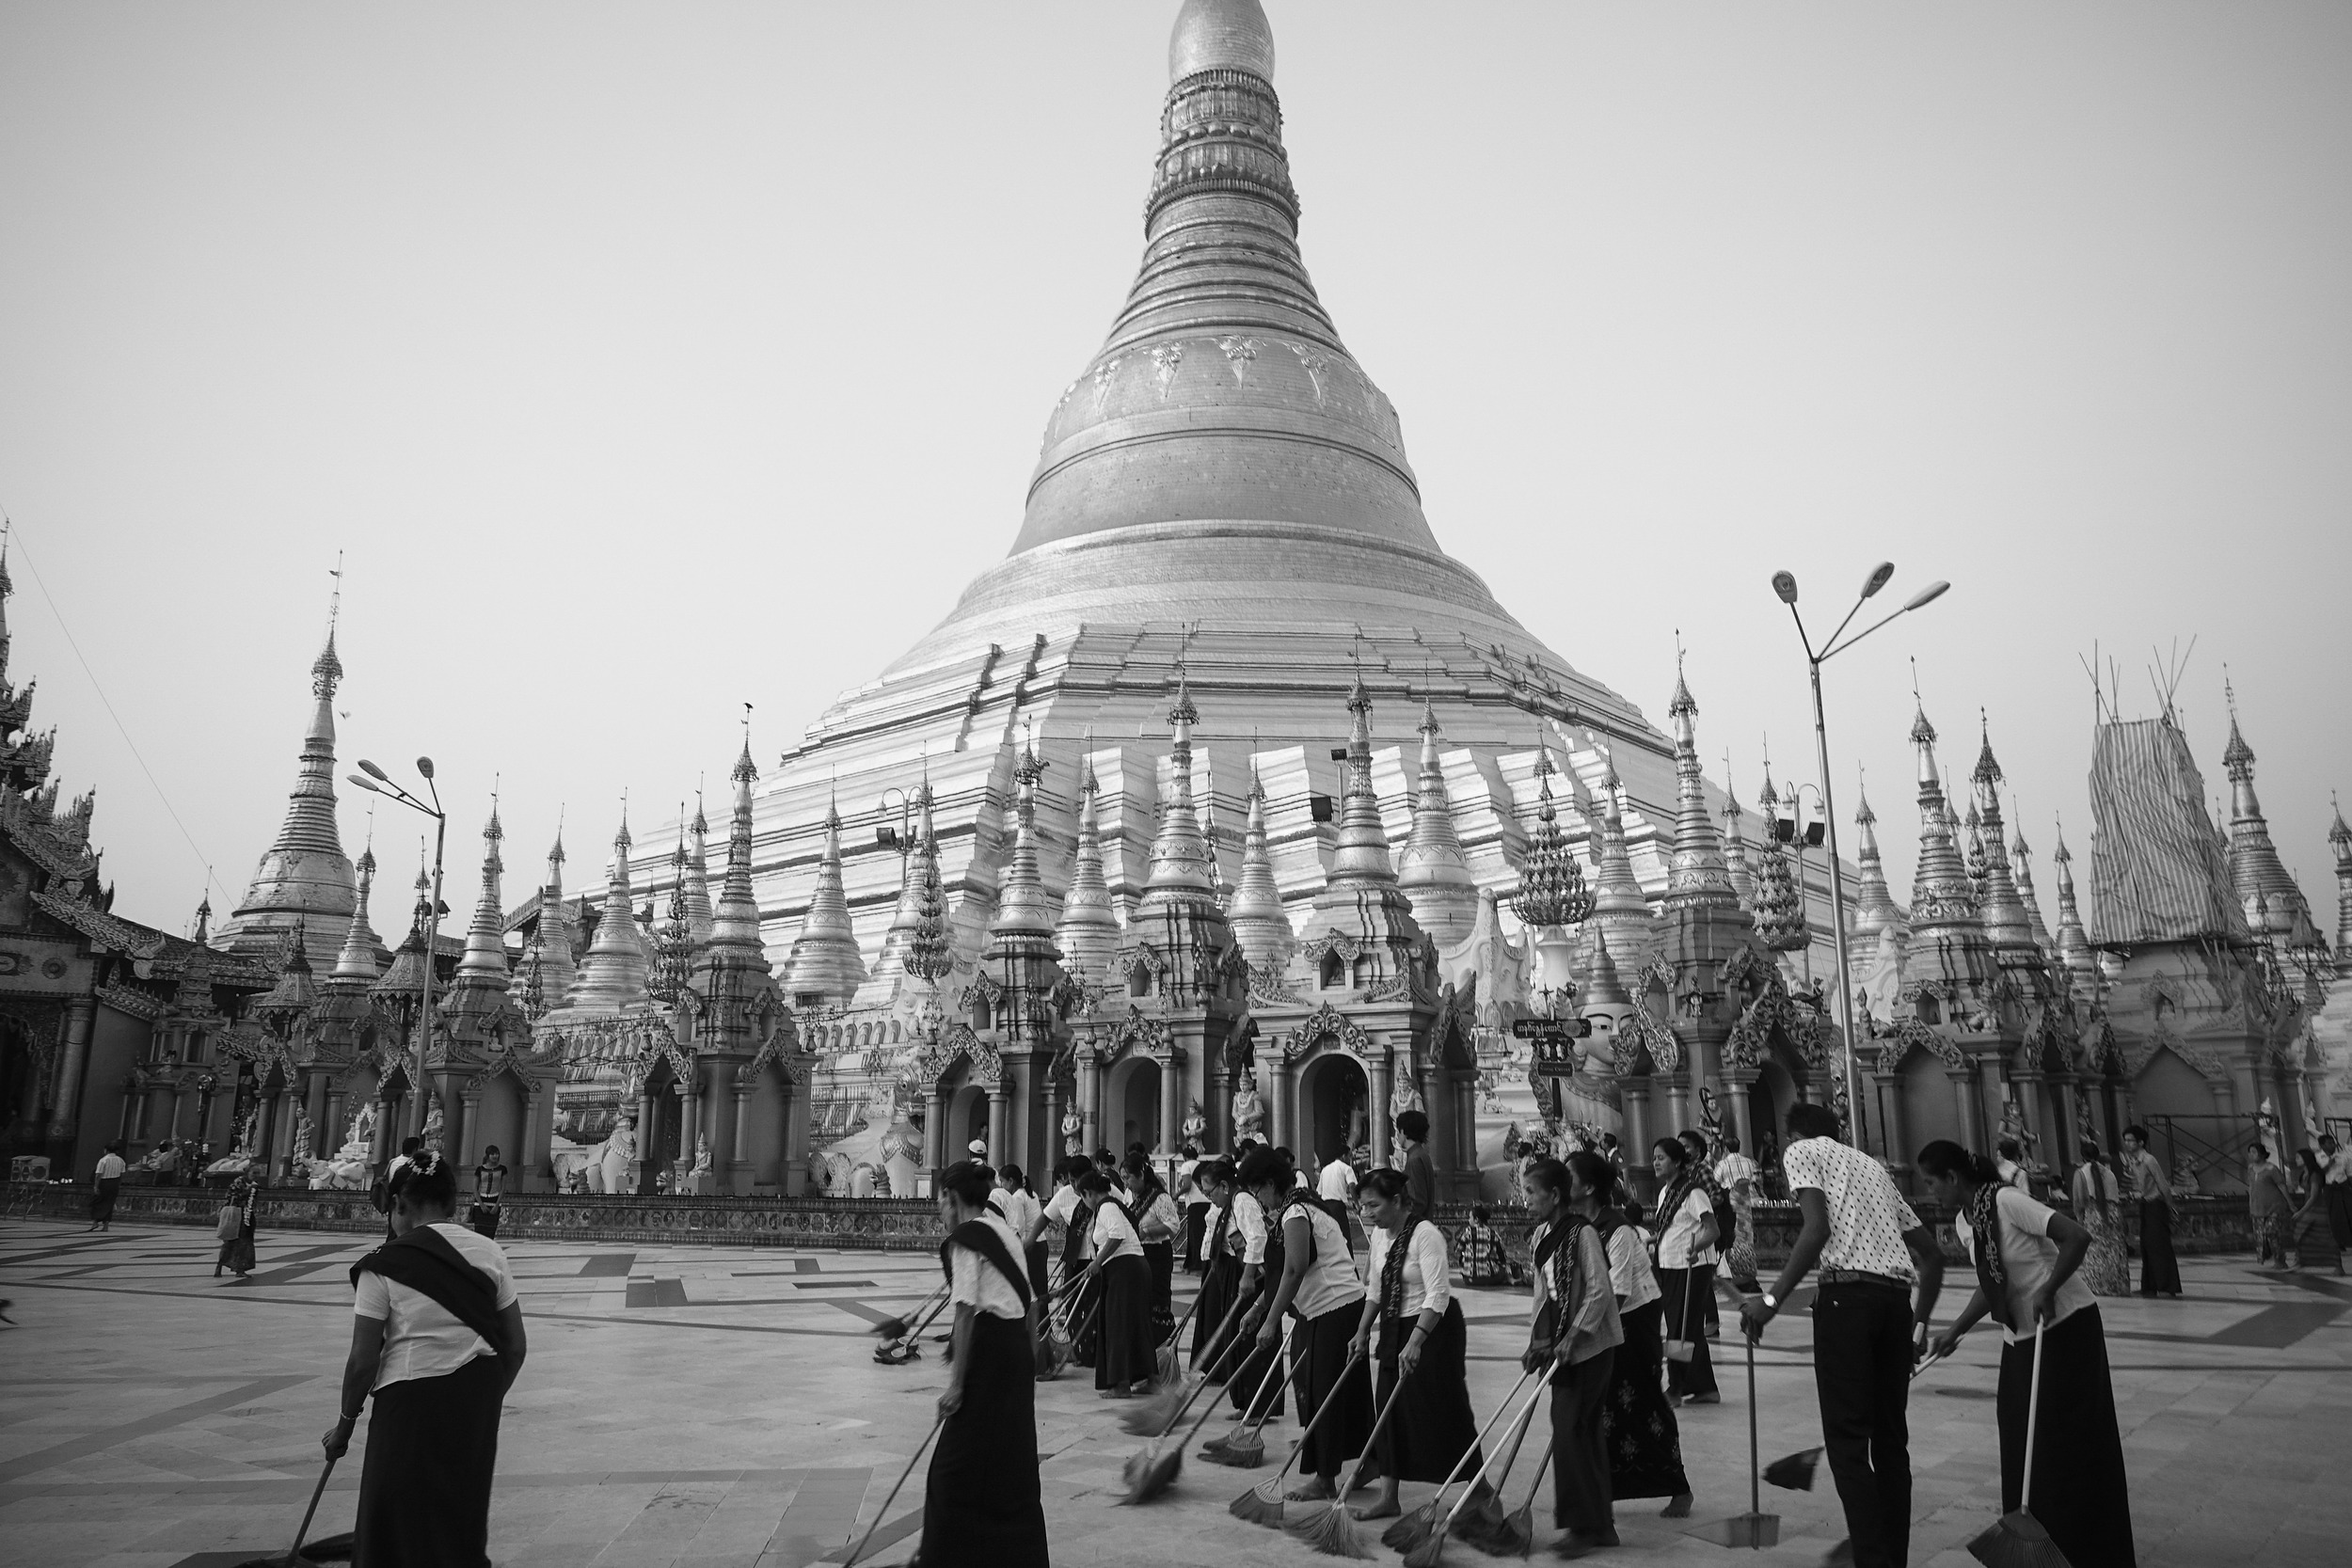 Ordinary folk pick up broom and dustpan and form a line of sweepers each morning at the temple forecourt.